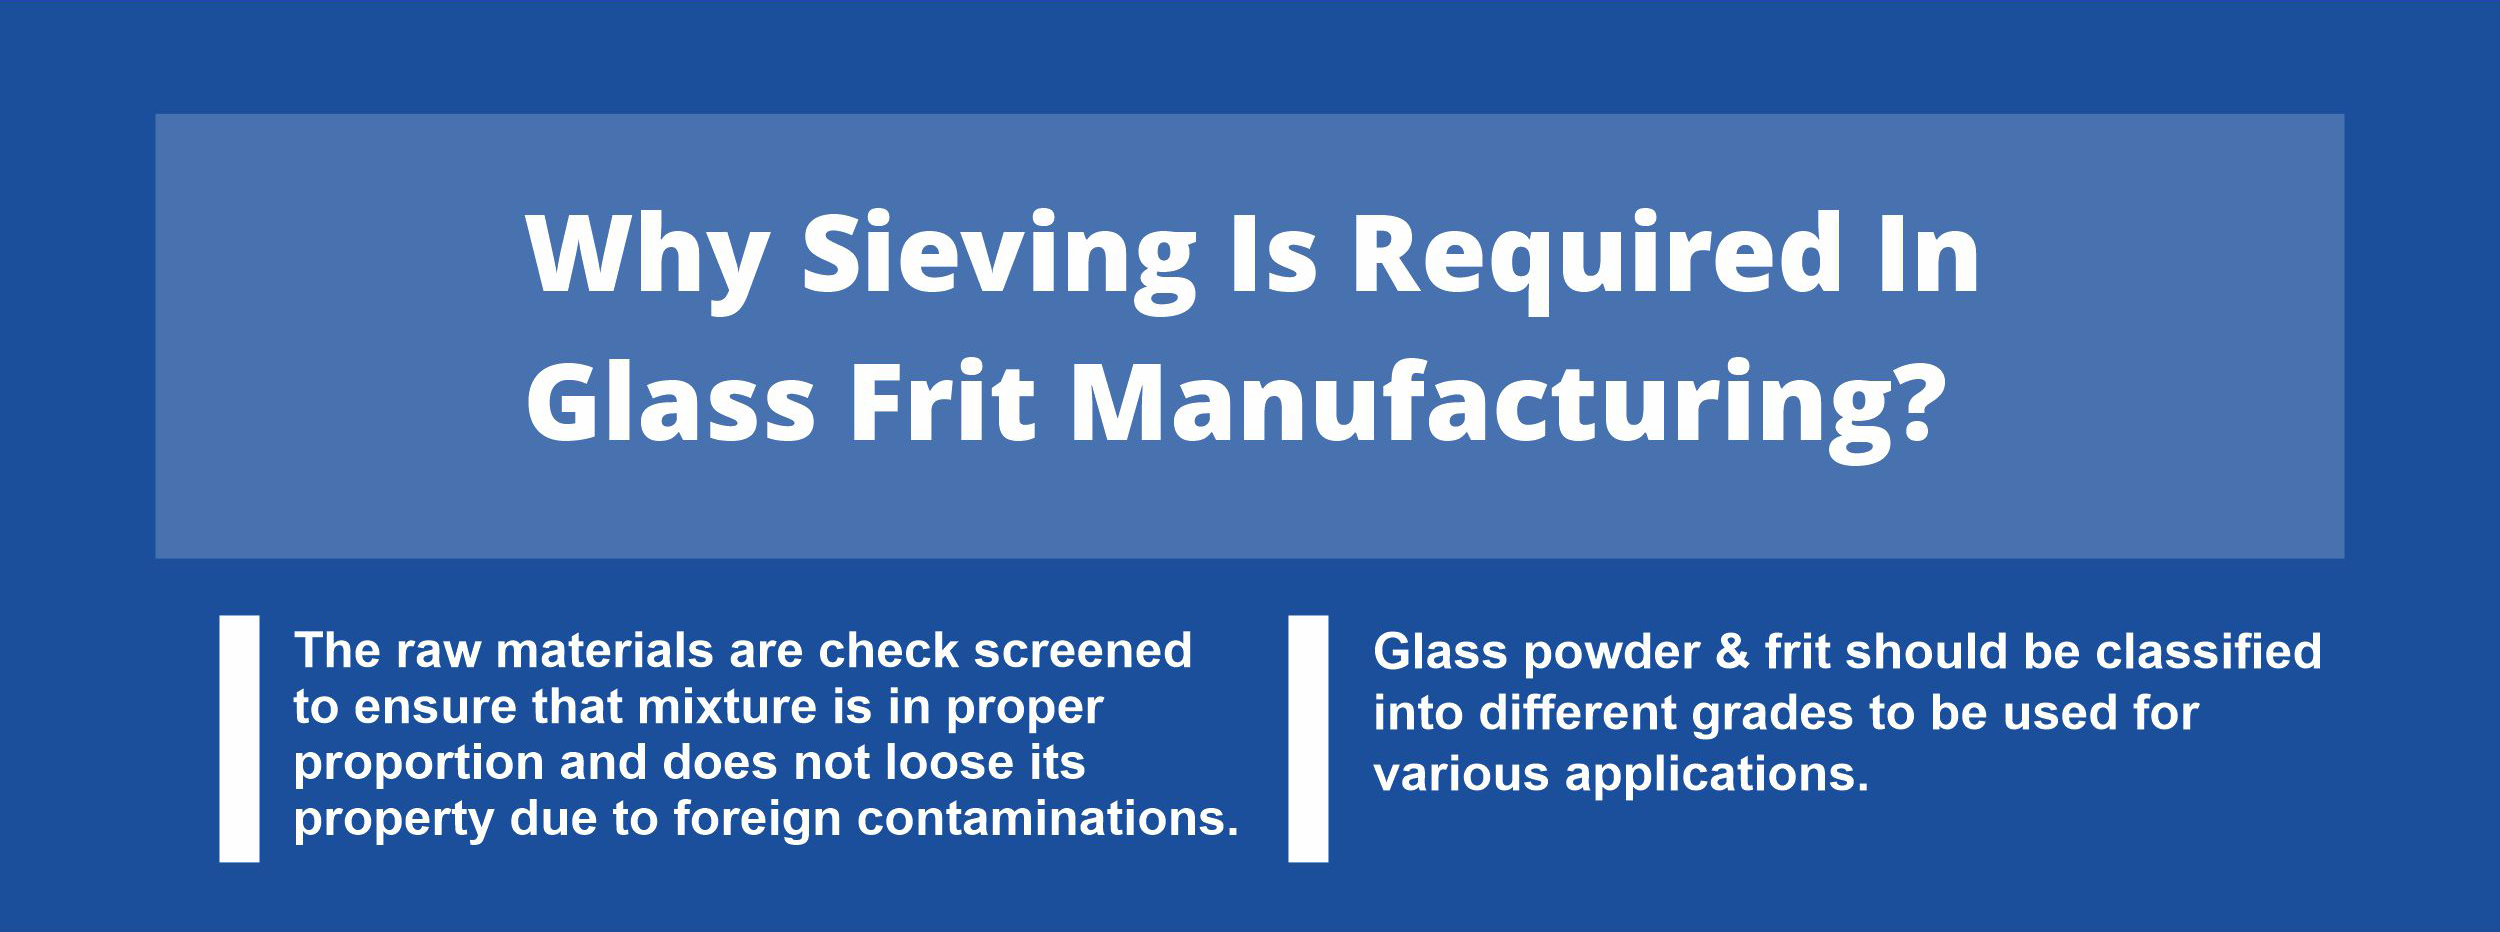 importance of sieving in glass frit